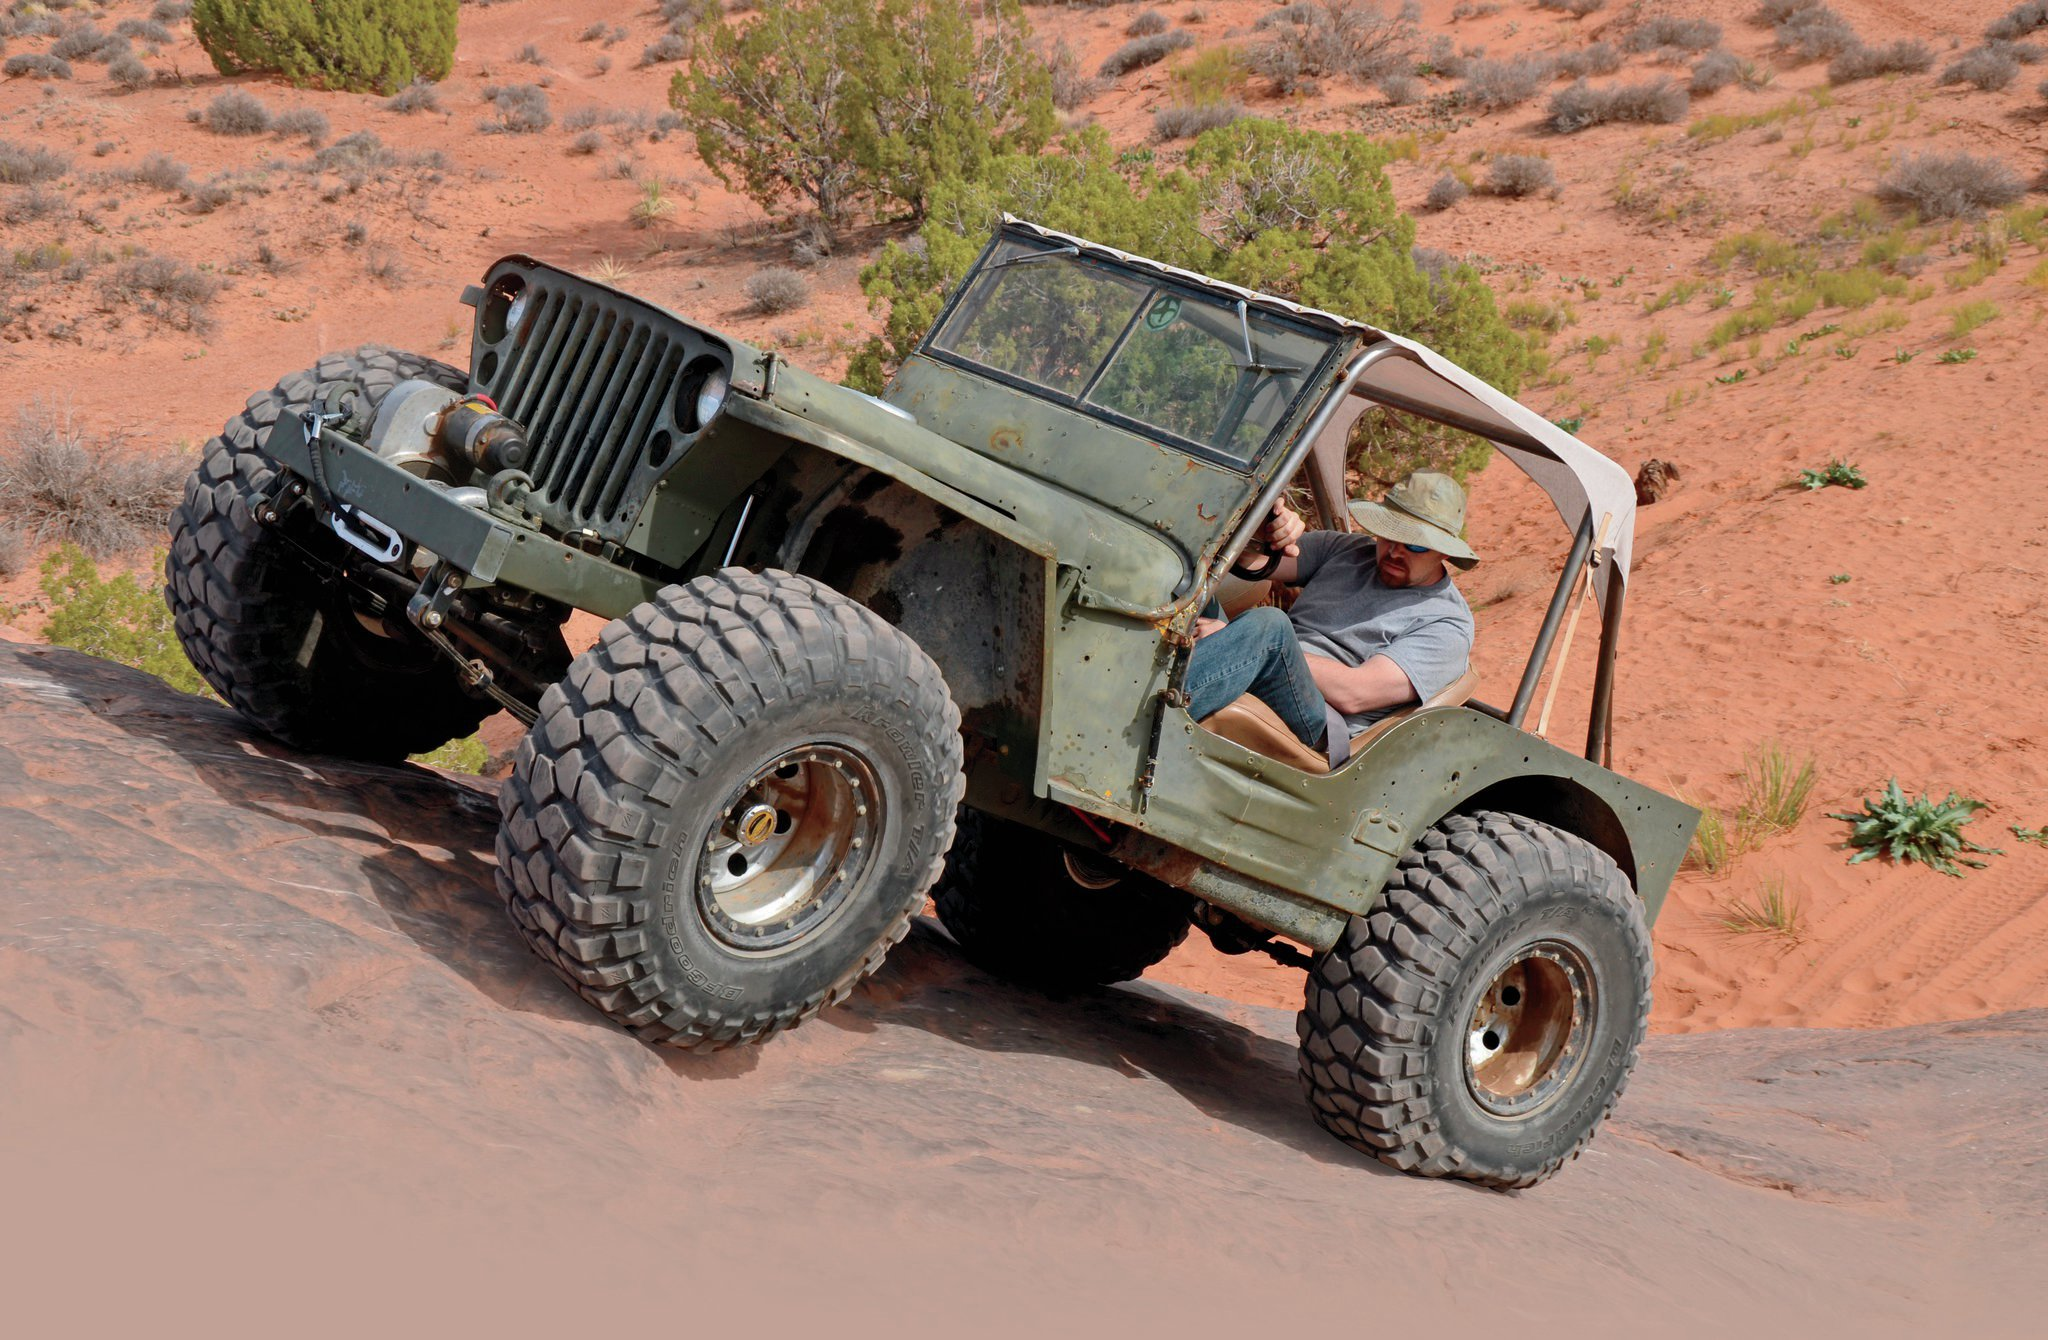 1942 Jeep Willys Mb Low Rider